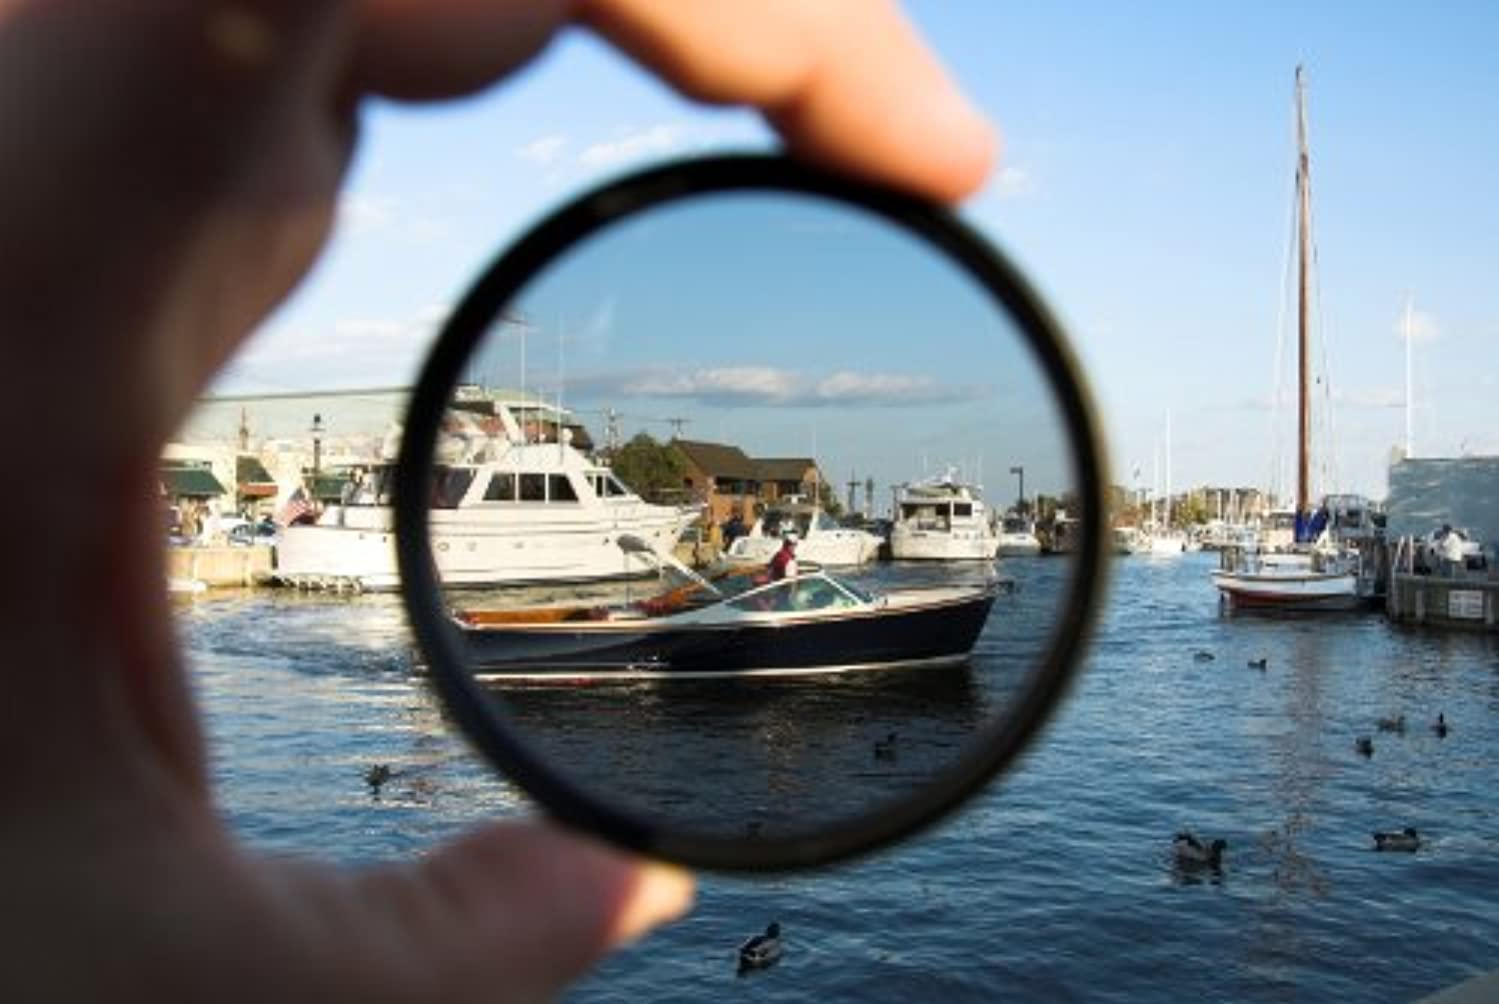 C-PL (Circular Polarizer) Multicoated | Multithreaded Glass Filter (52mm) For Leica V-LUX 3